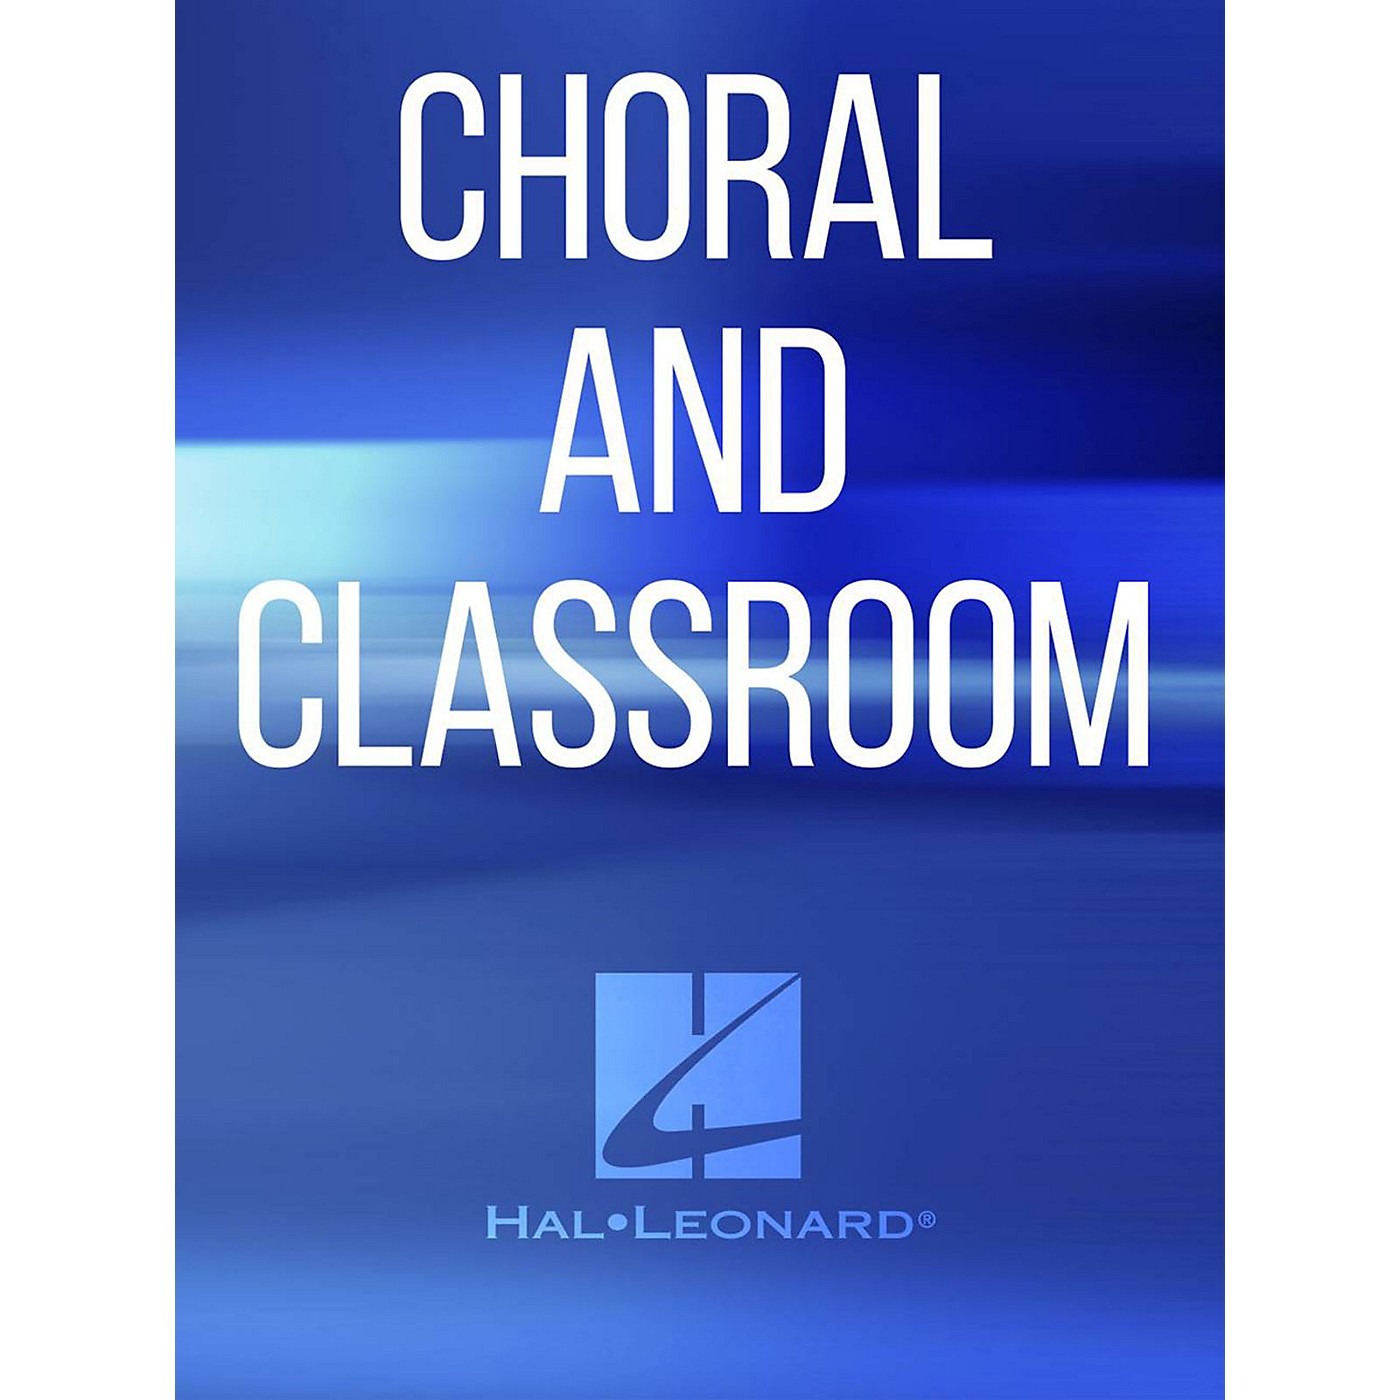 Hal Leonard Wechsellied Zum Tanz Op.31 No. 1 SATB Composed by William Hall thumbnail